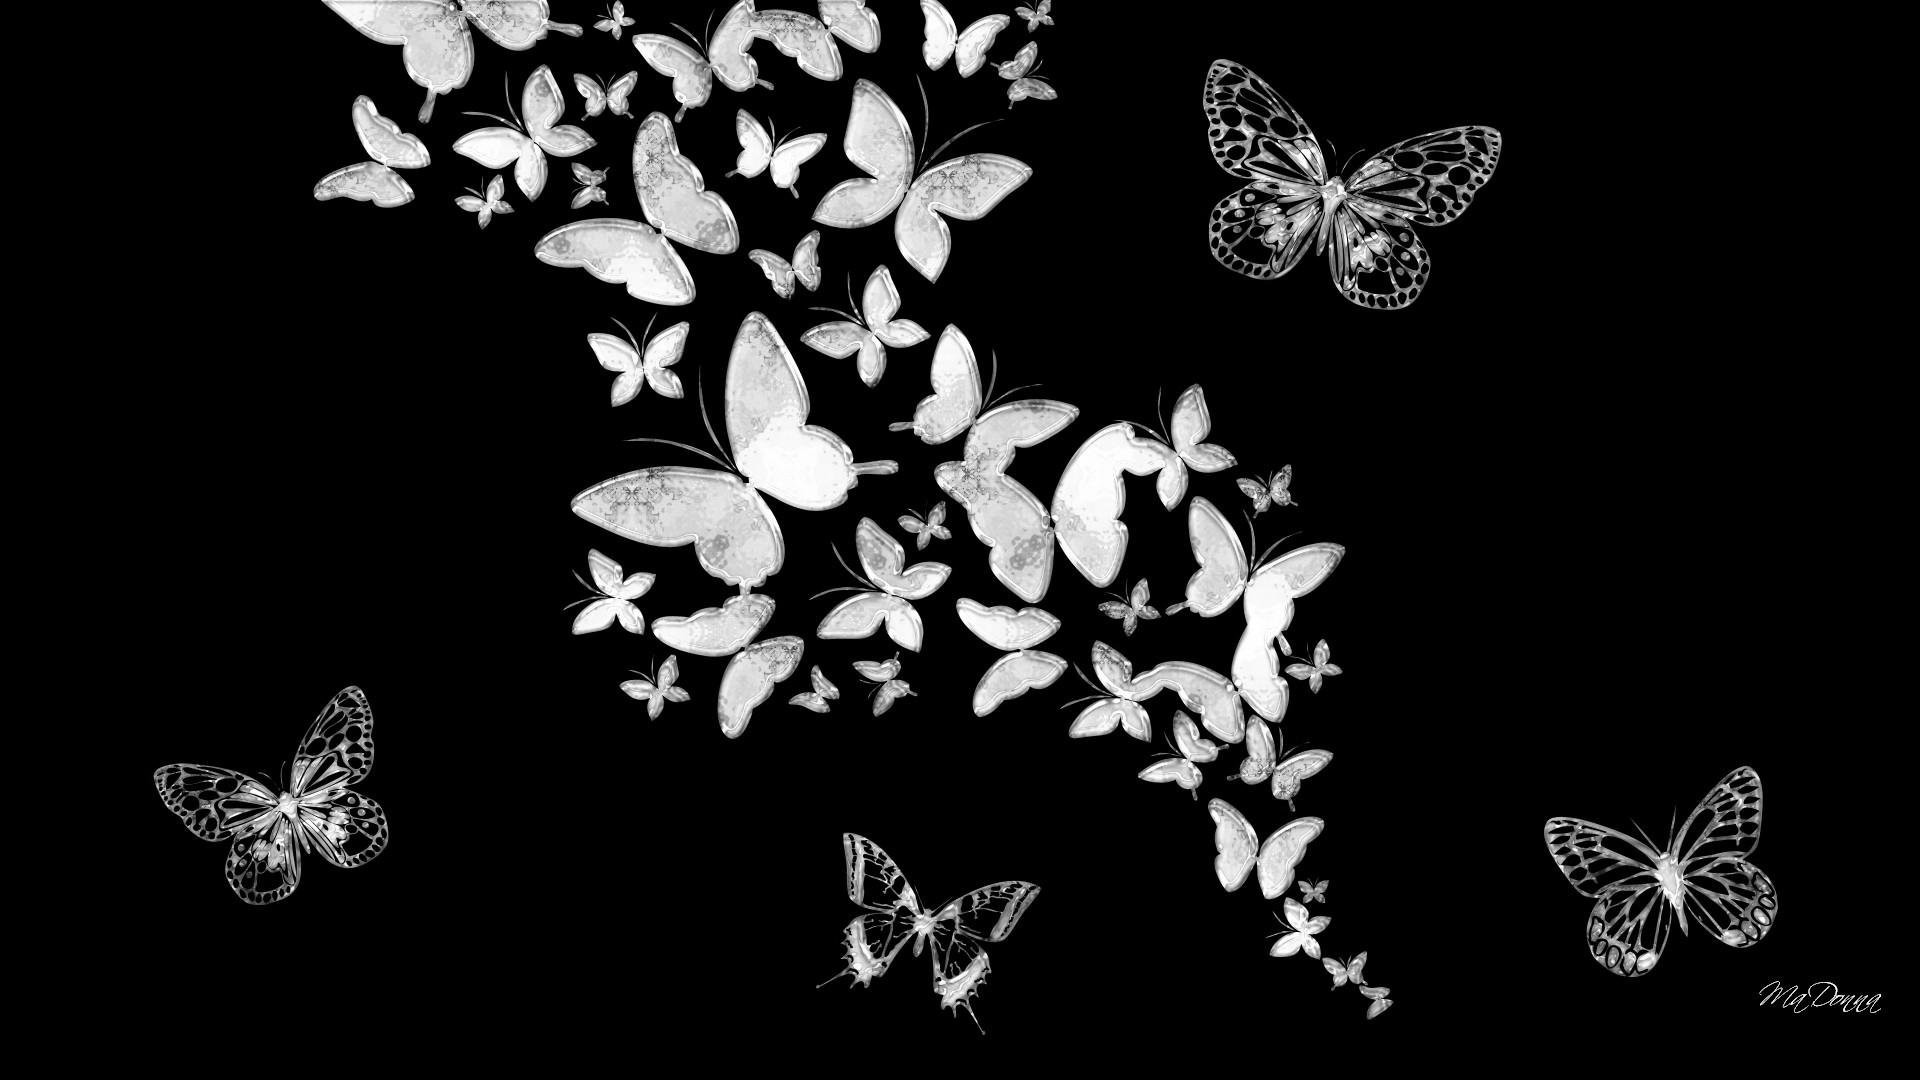 1920x1080 wallpaper.wiki-Butterfly-black-and-white-hd-wallpapers-